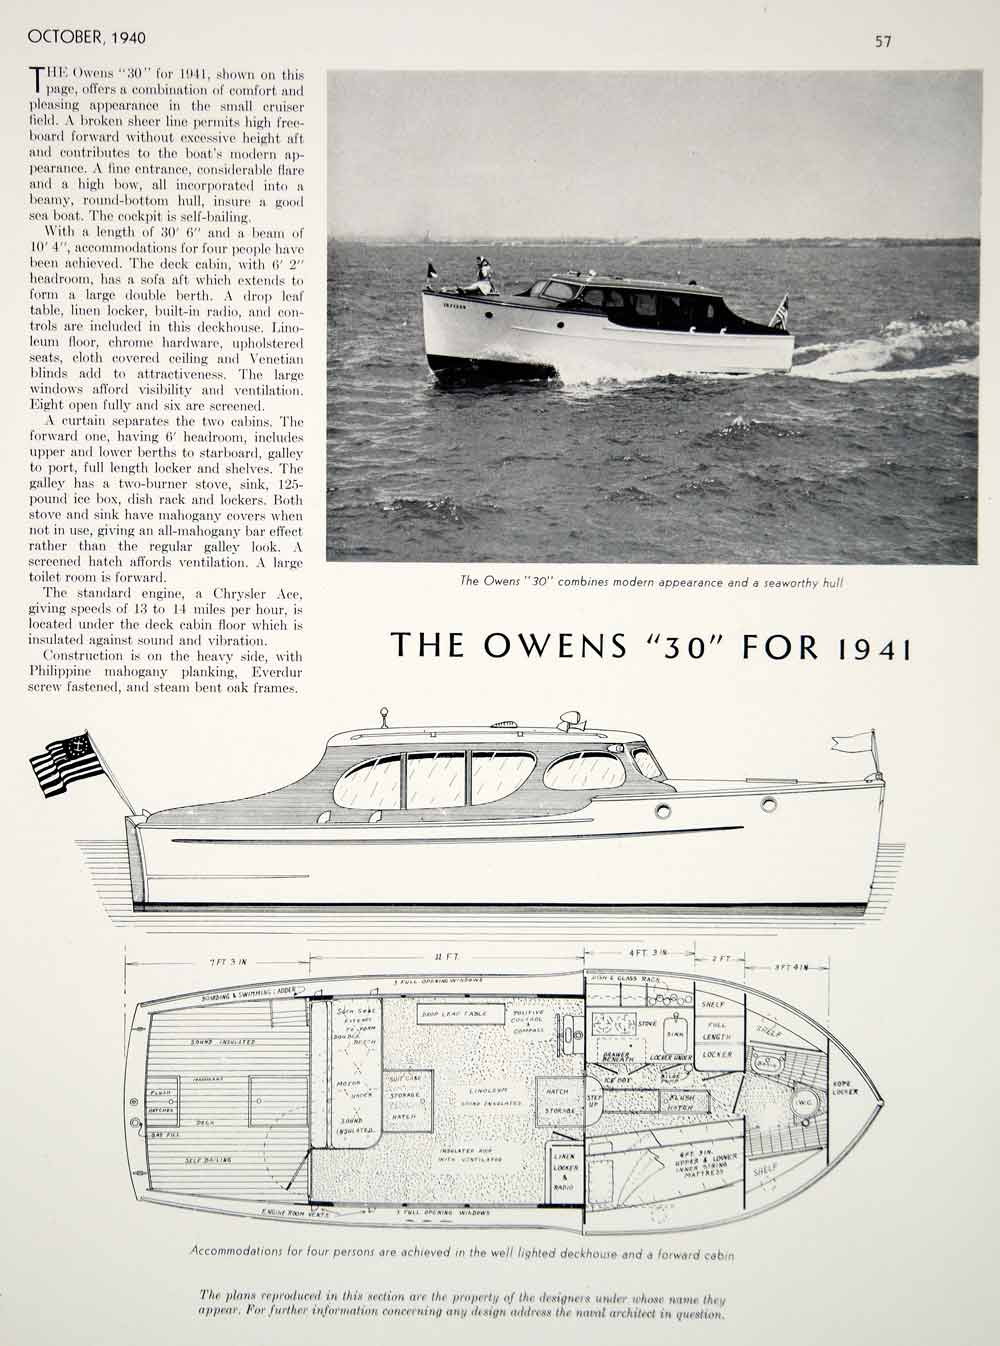 1940 article owens 30 small motor cruiser yacht cabin plan profile 1940 article owens 30 small motor cruiser yacht cabin plan profile diagram boat ccuart Gallery